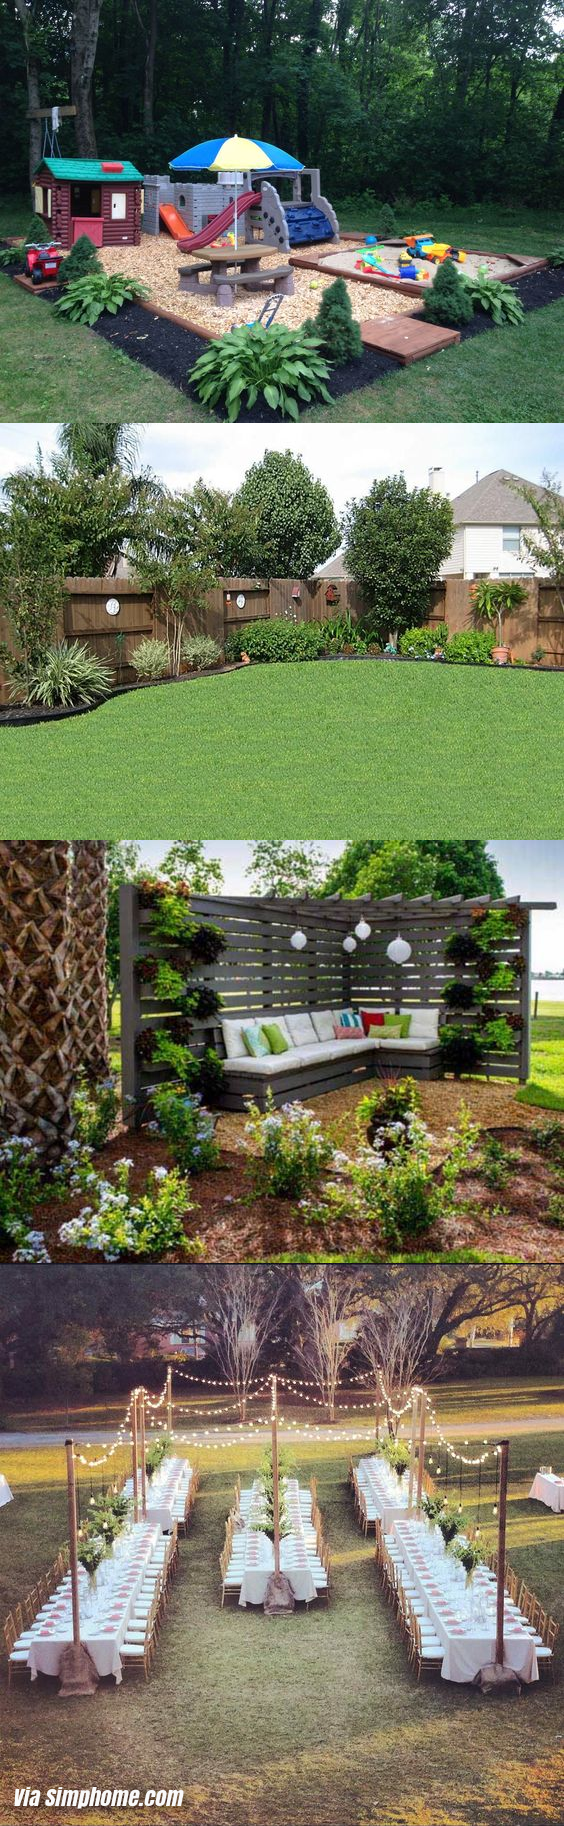 backyard and gadening ideas via Simphome